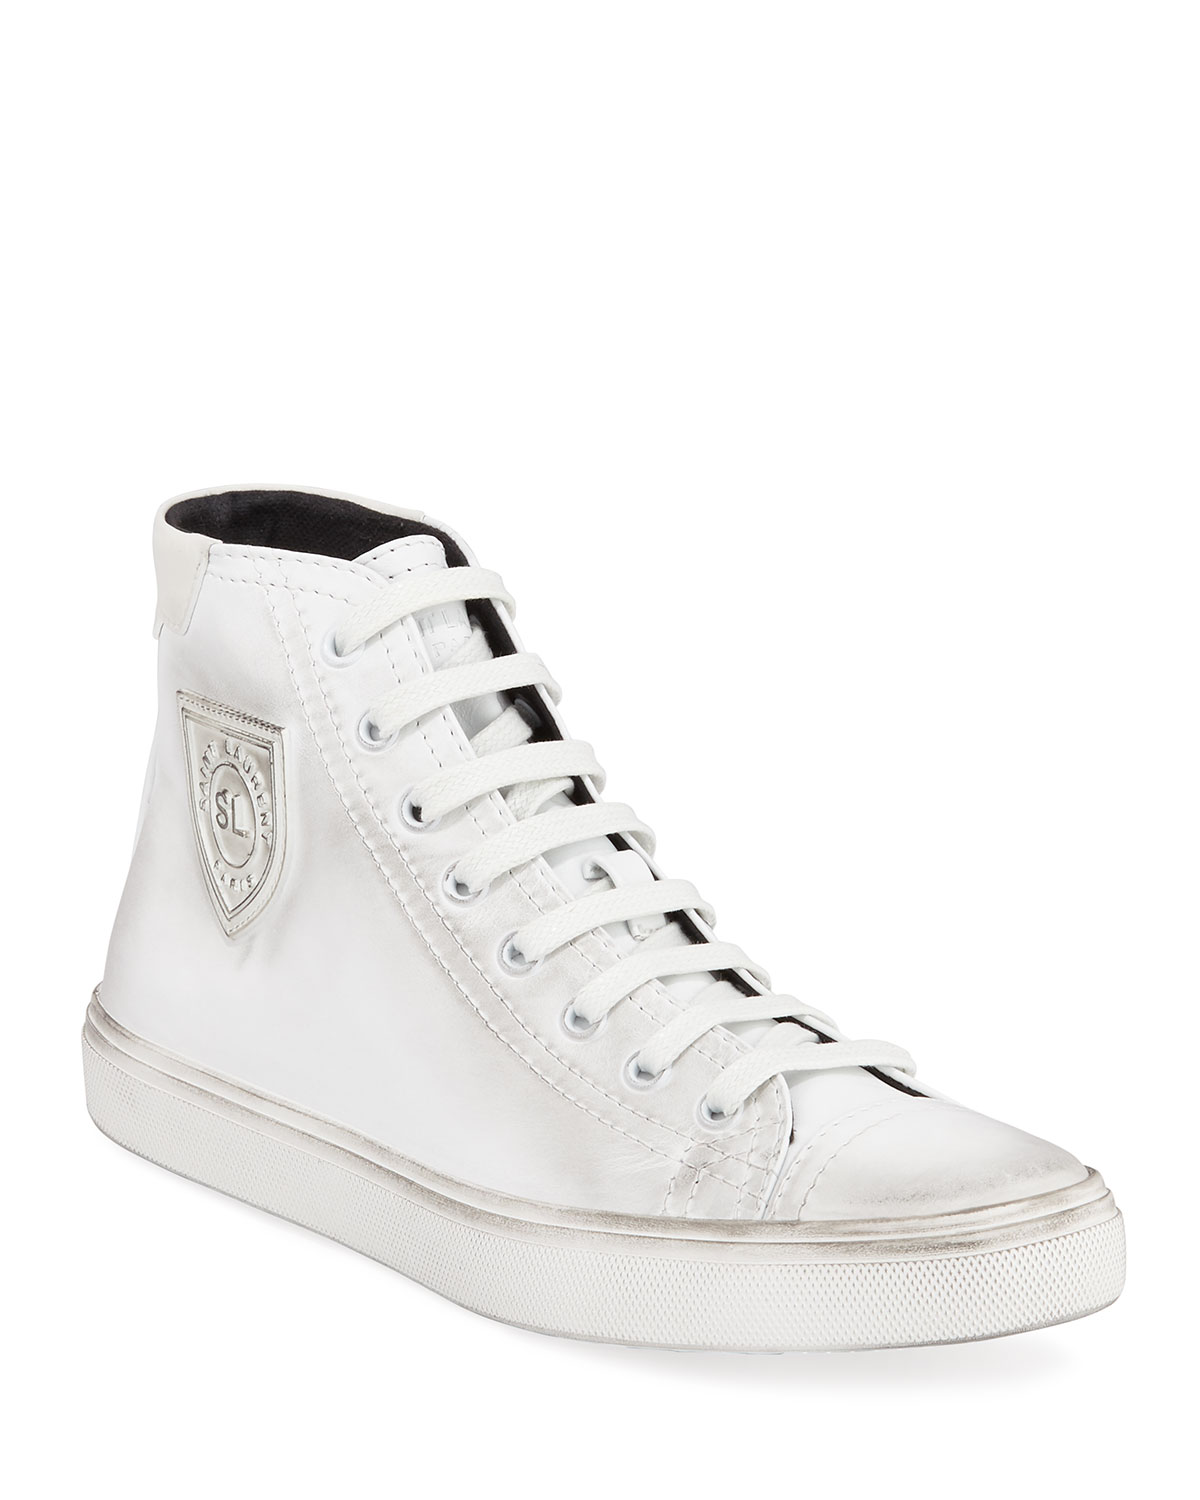 Bedford Leather Lace Up Sneakers by Saint Laurent